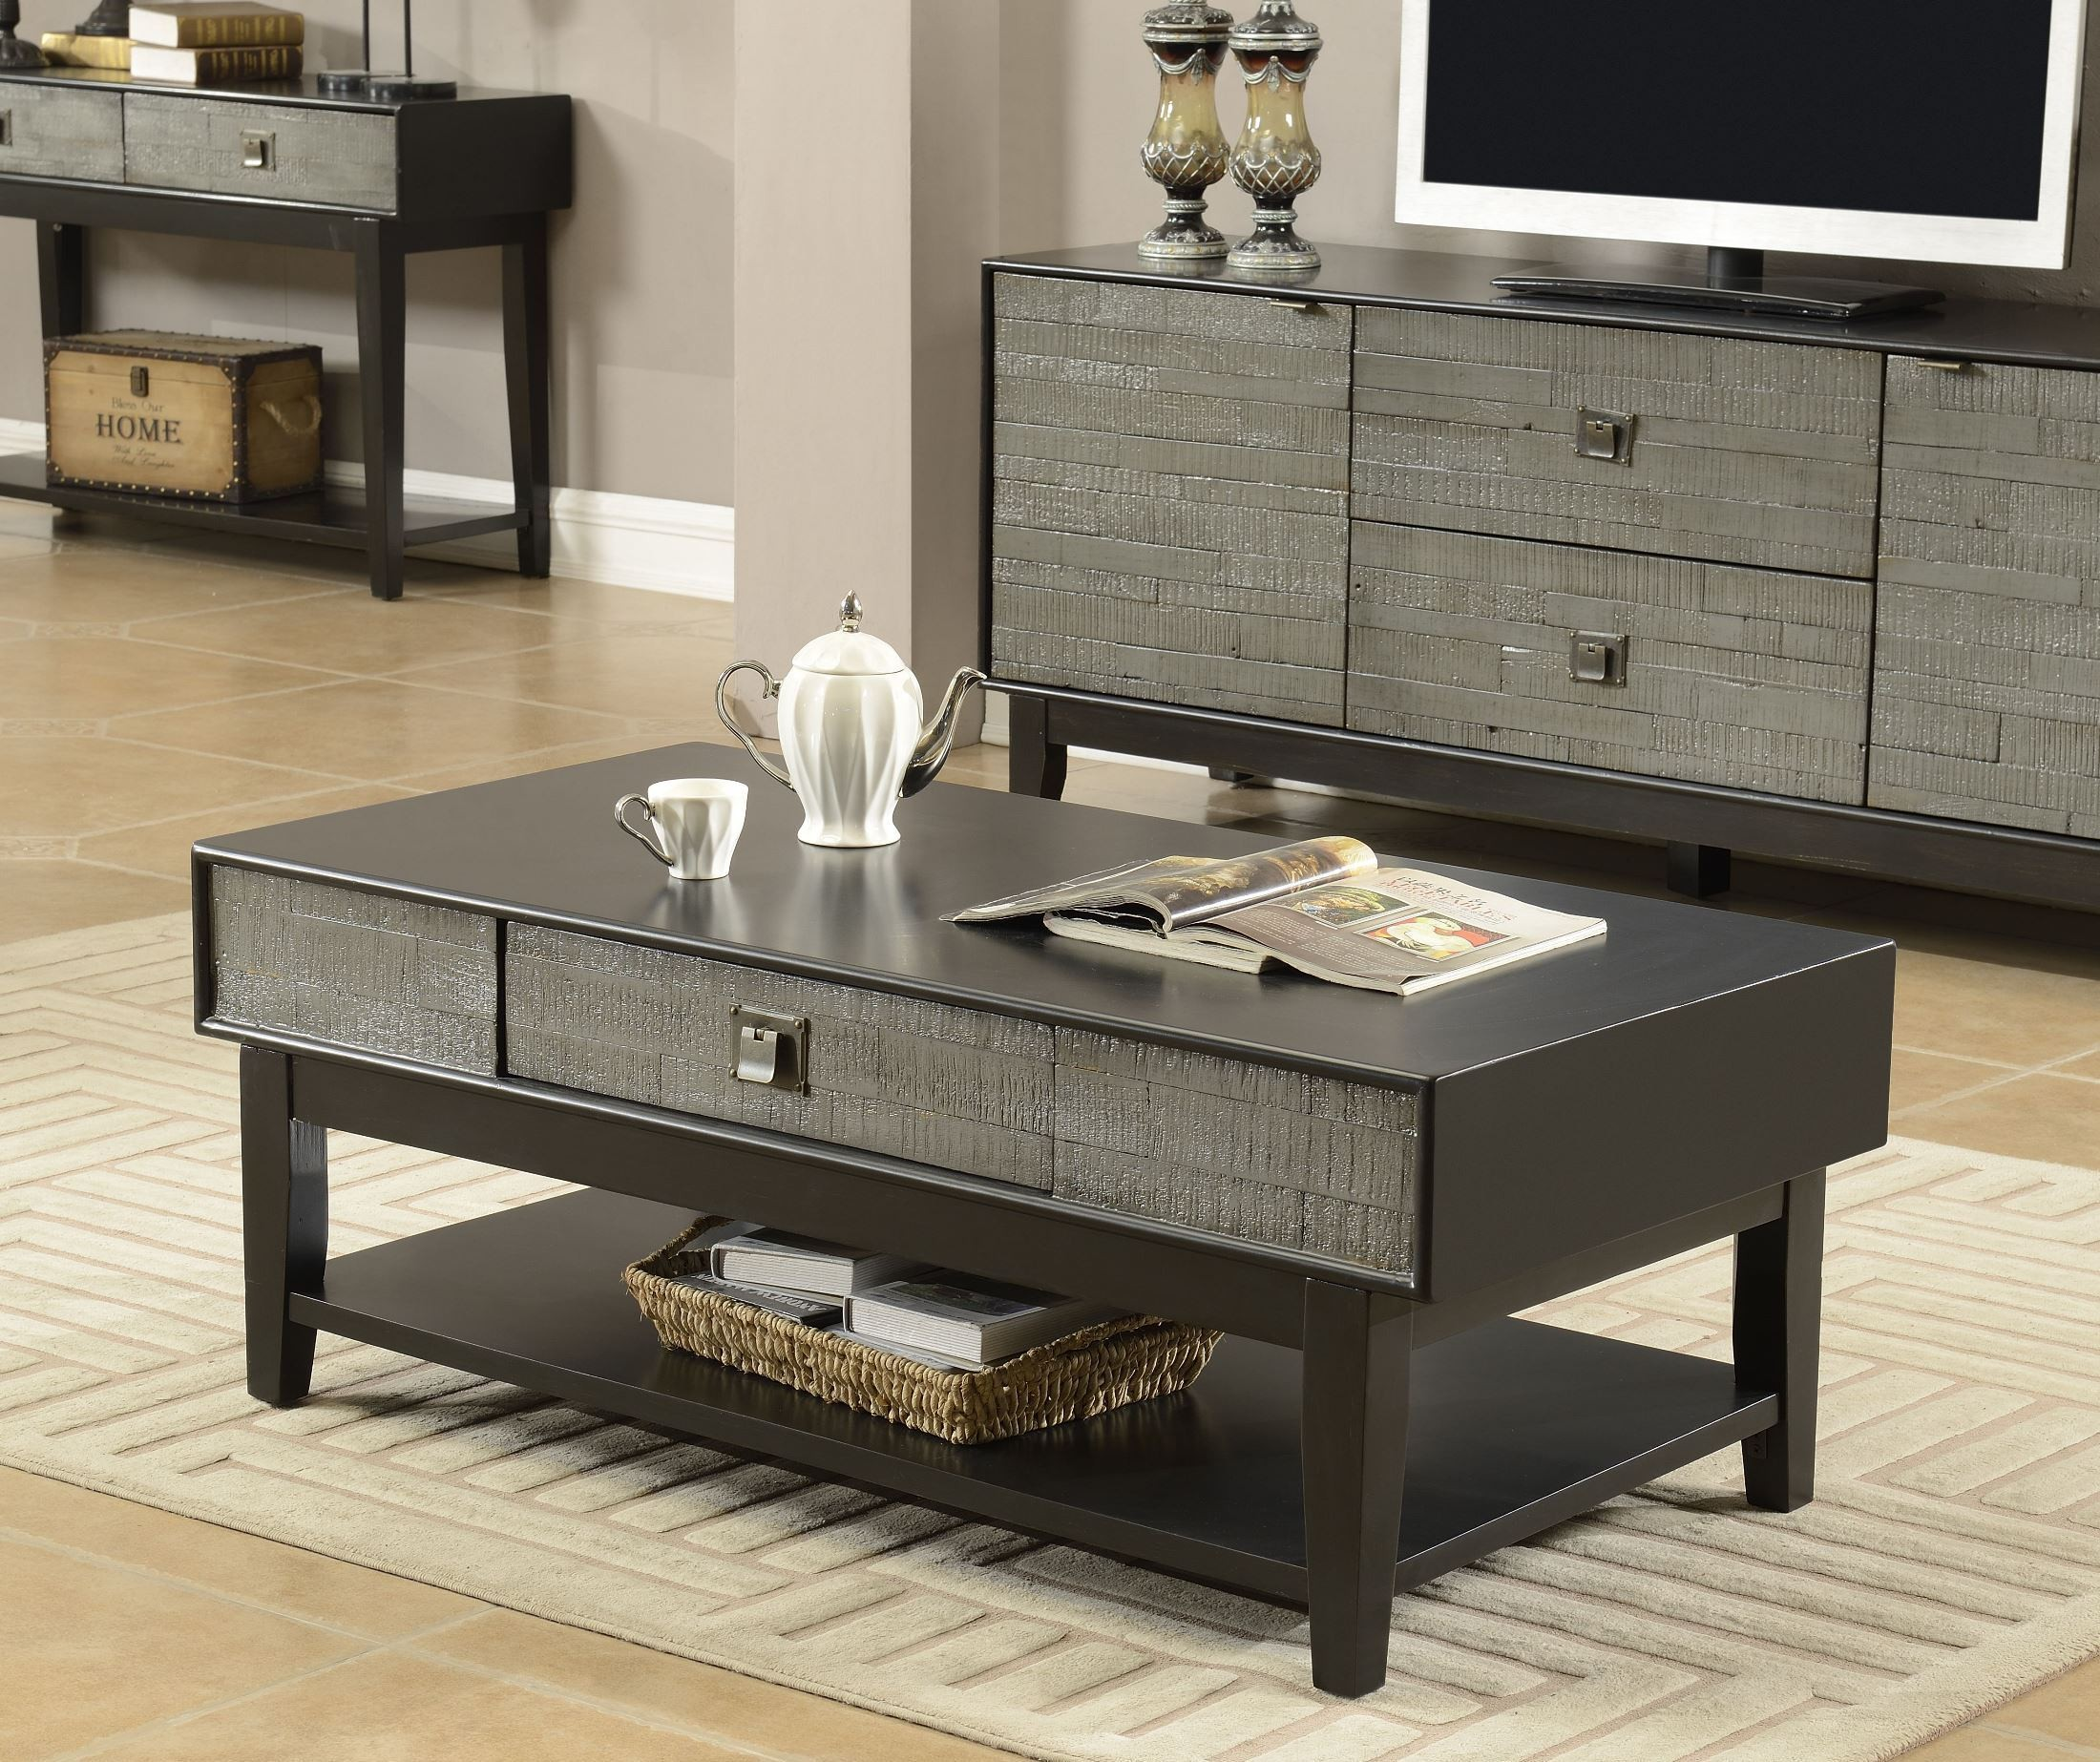 Linville grey one drawer occasional table set from coast for Occasional table with drawers